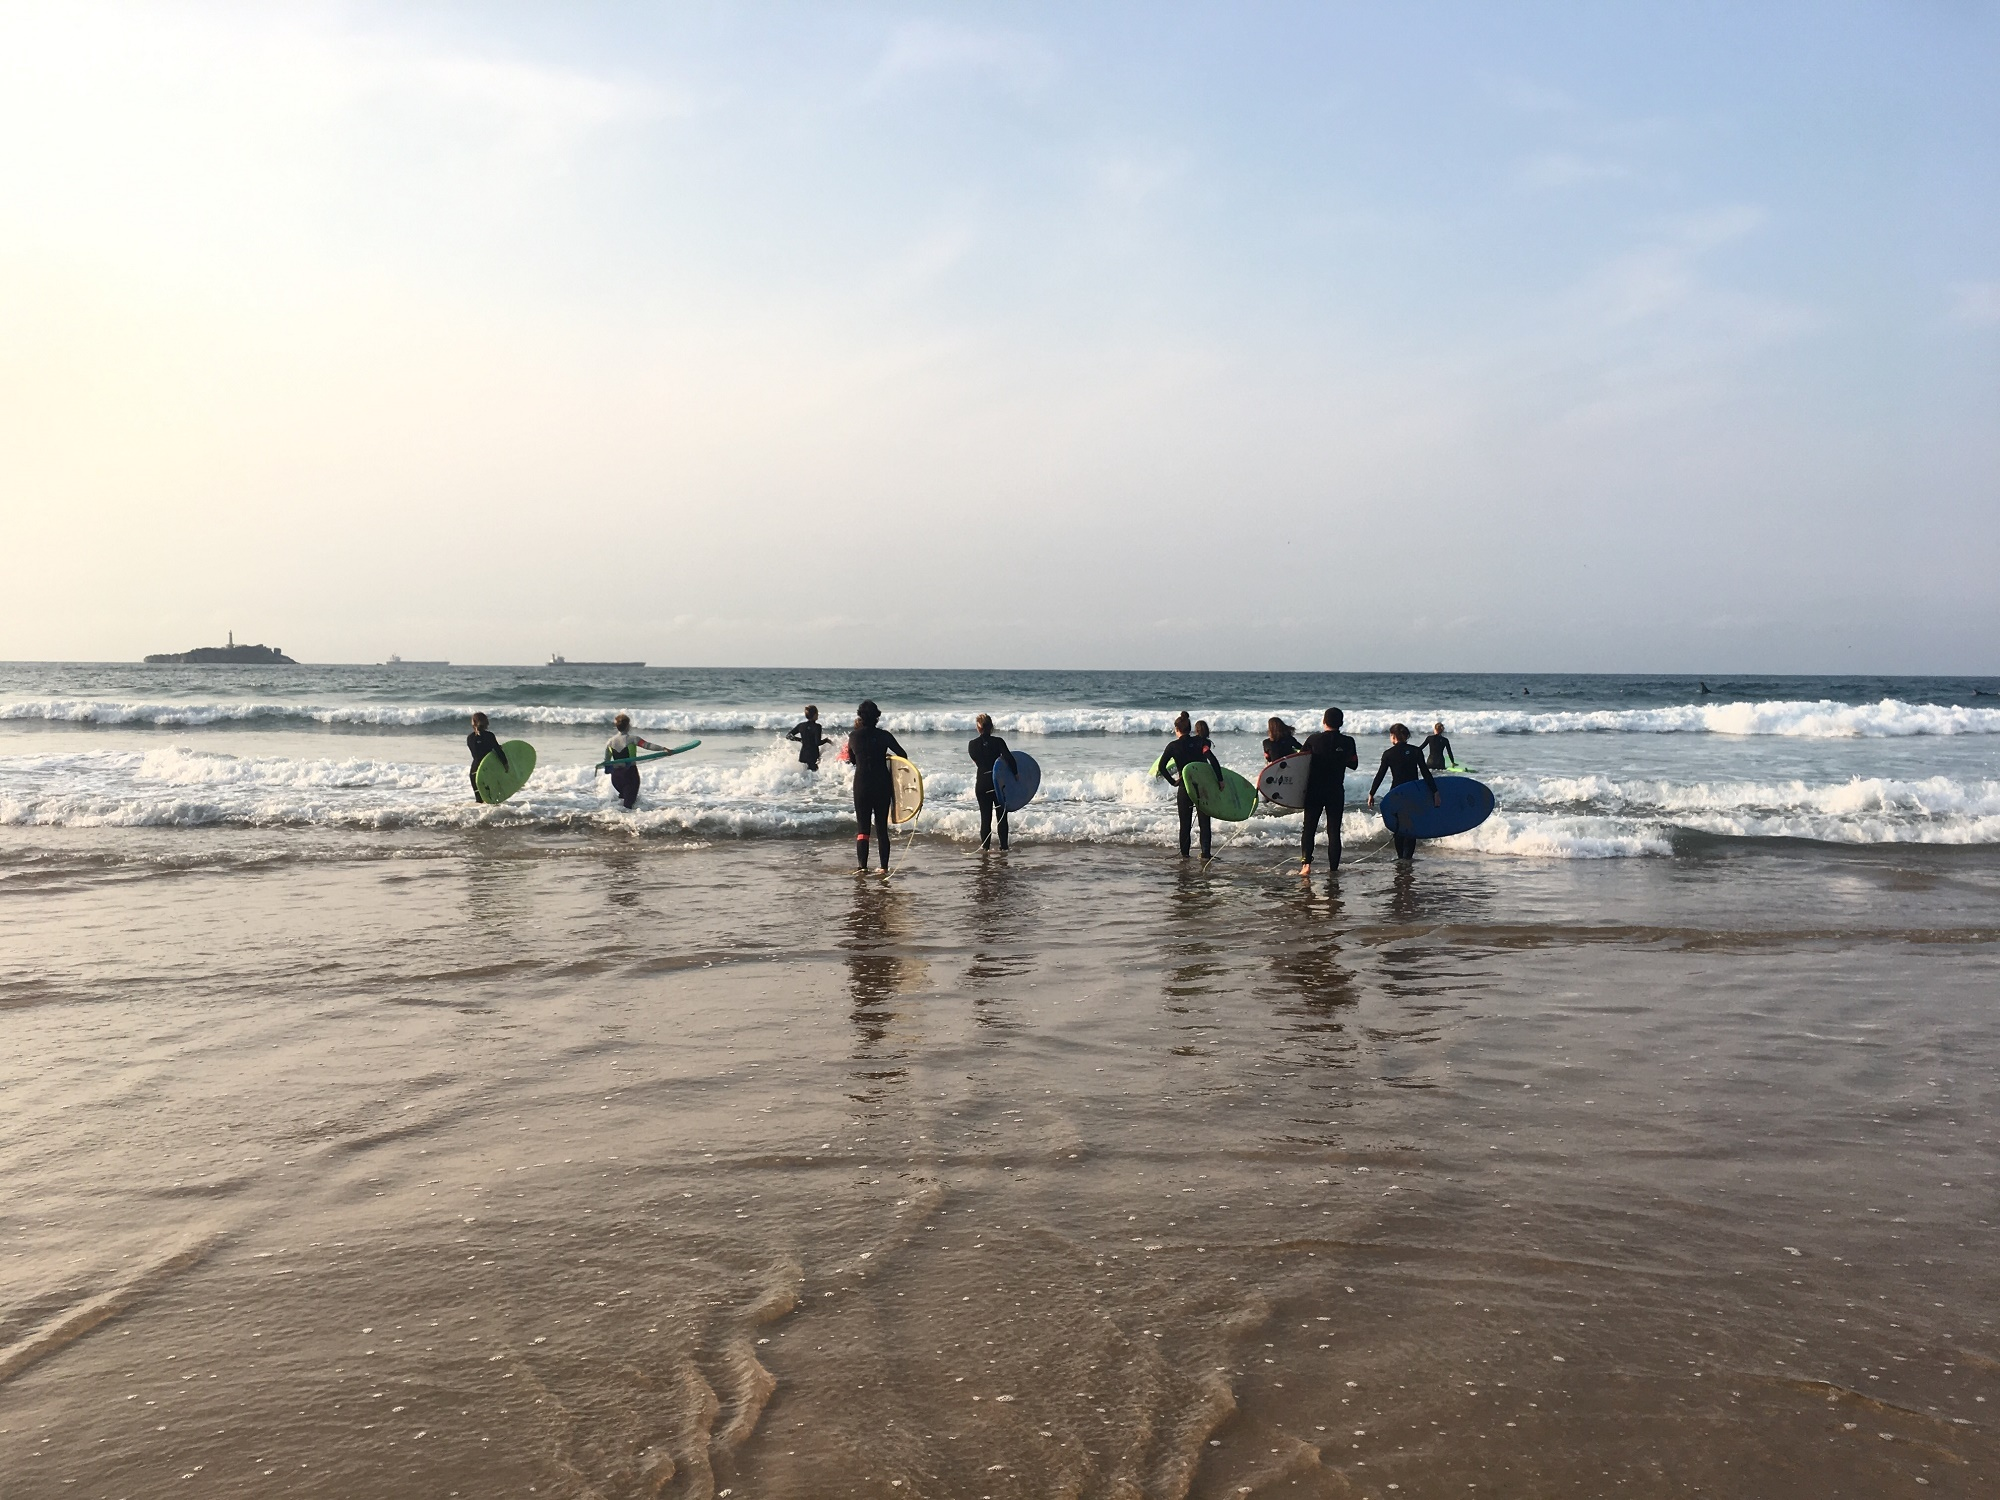 surf fitness training camp escuela cantabra de surf isabel del barrio onmytrainingshoes escapada activa evento entrenamiento training surfing somo